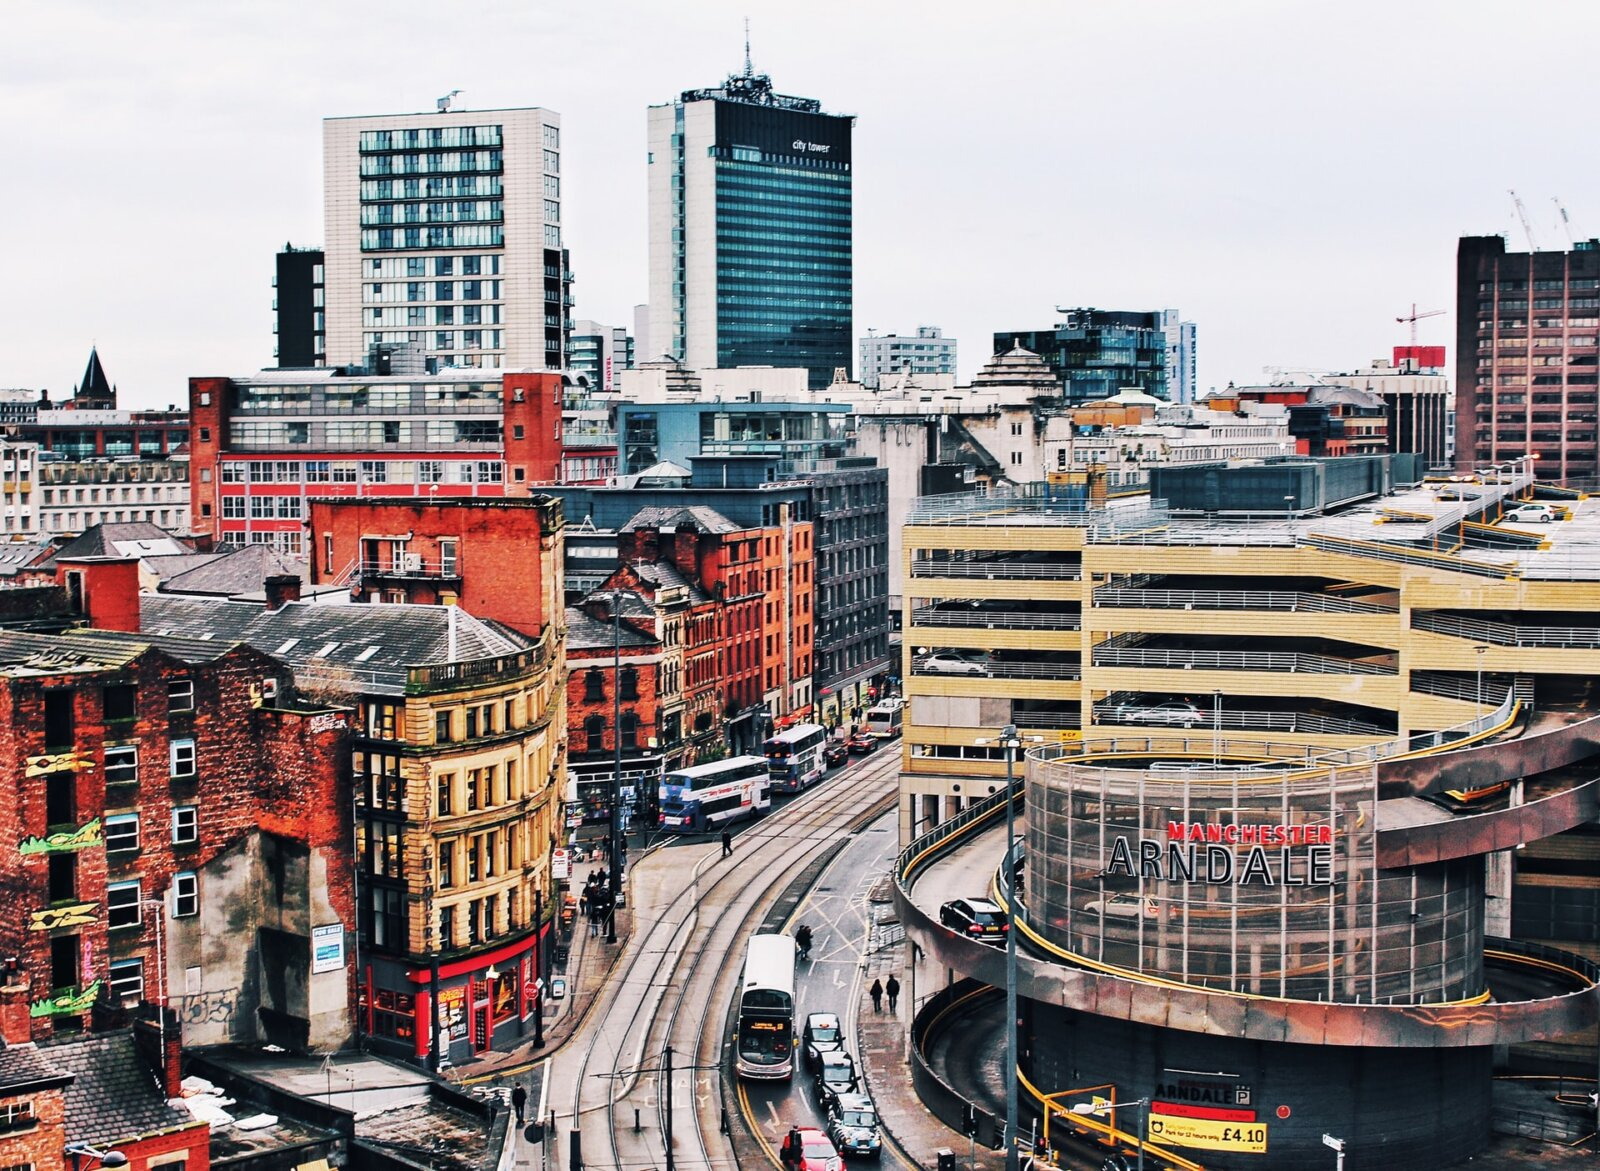 Manchester owner-occupiers still ignored in residential sales, CAPITAL&CENTRIC research shows, The Manc